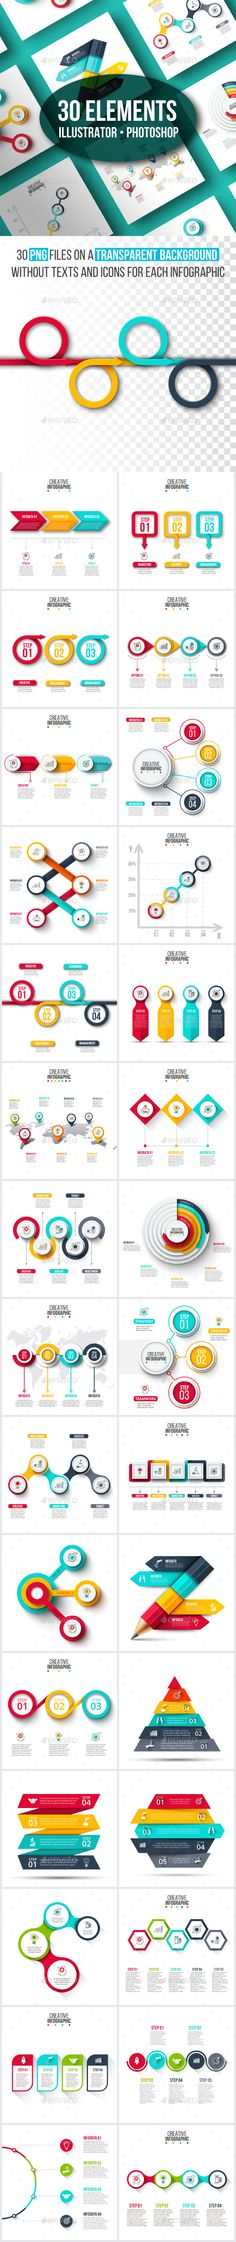 Creative infographic pack v.01 - #Infographics